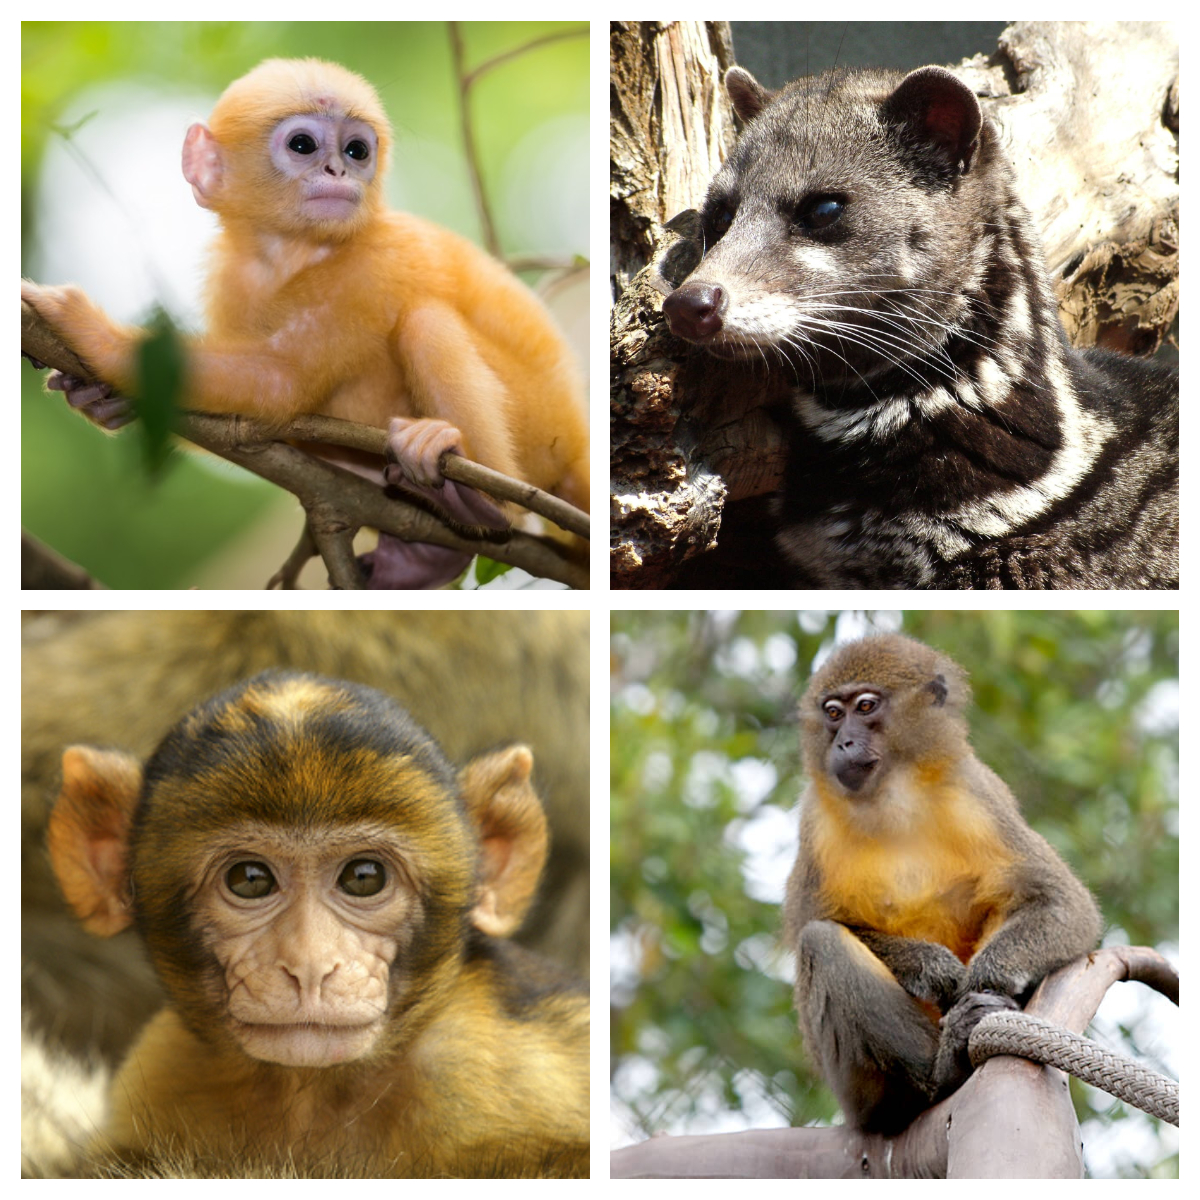 Top: Dusky leaf monkey and Malayan civet under 'Hunted Species'. Bottom: Macaques and Mangabeys under 'Others'.